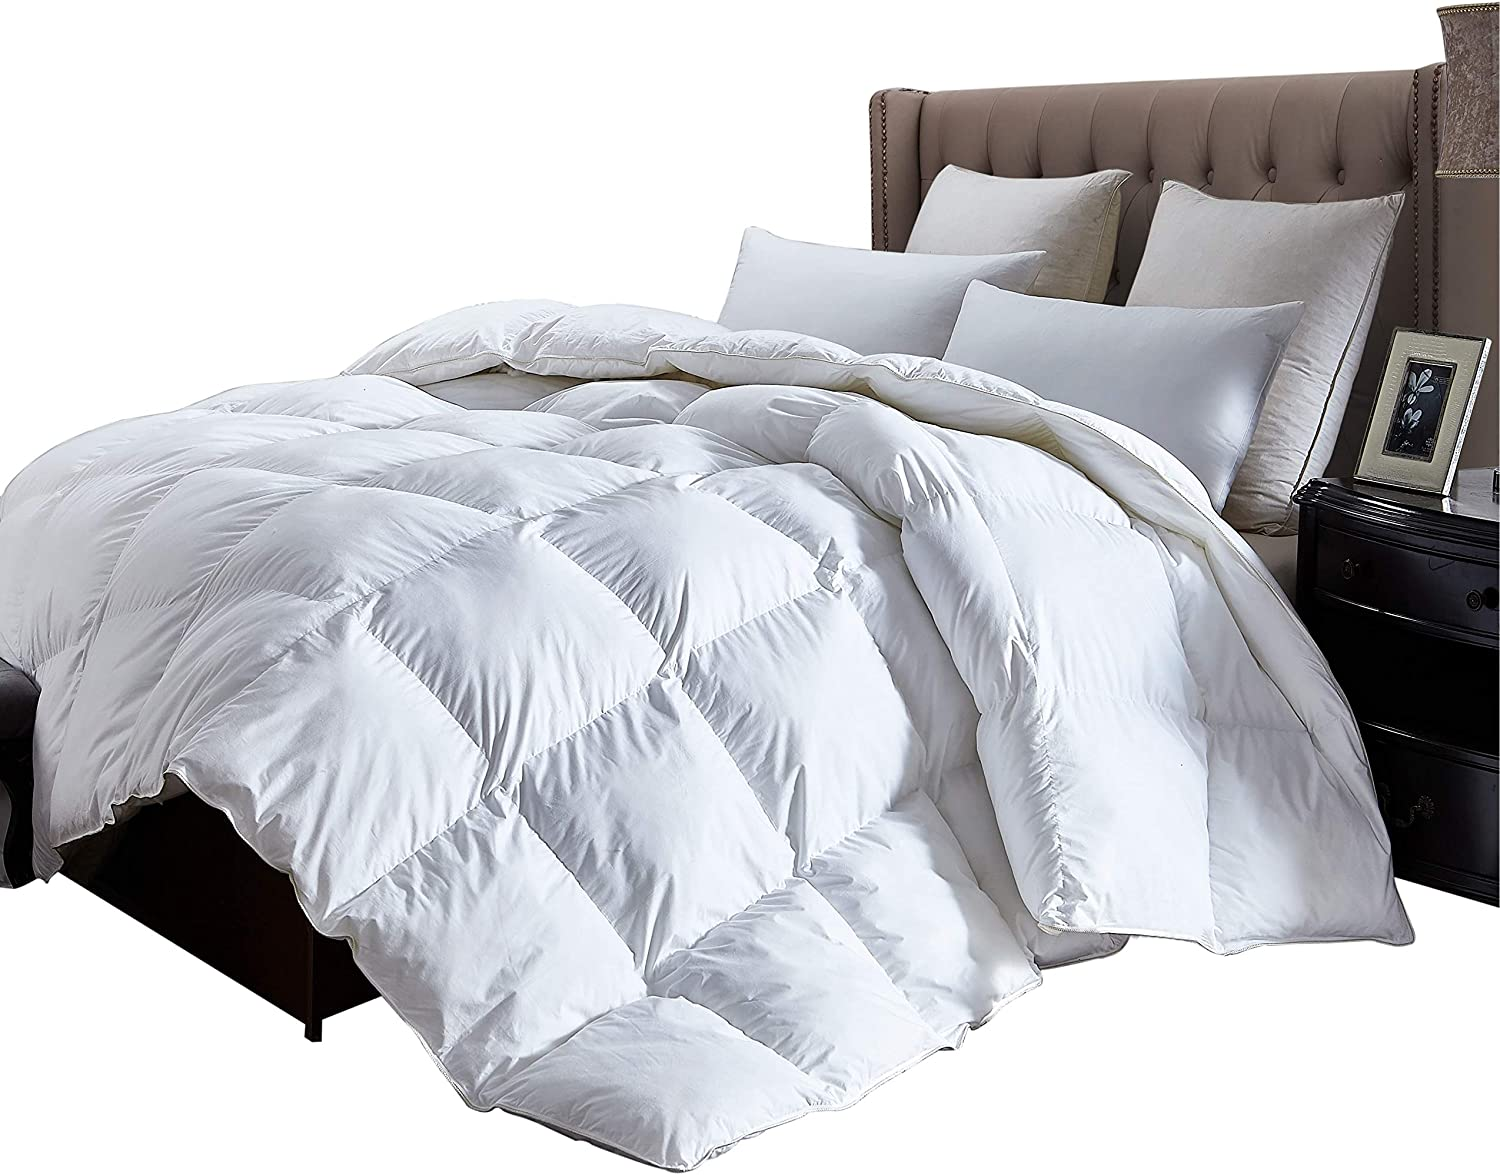 Luxurious Queen Size Lightweight GOOSE DOWN Comforter Duvet Insert All Season, 1200 Thread Count 100% Egyptian Cotton, 750+ Fill Power, 38 oz Fill Weight, Hypoallergenic, White Color